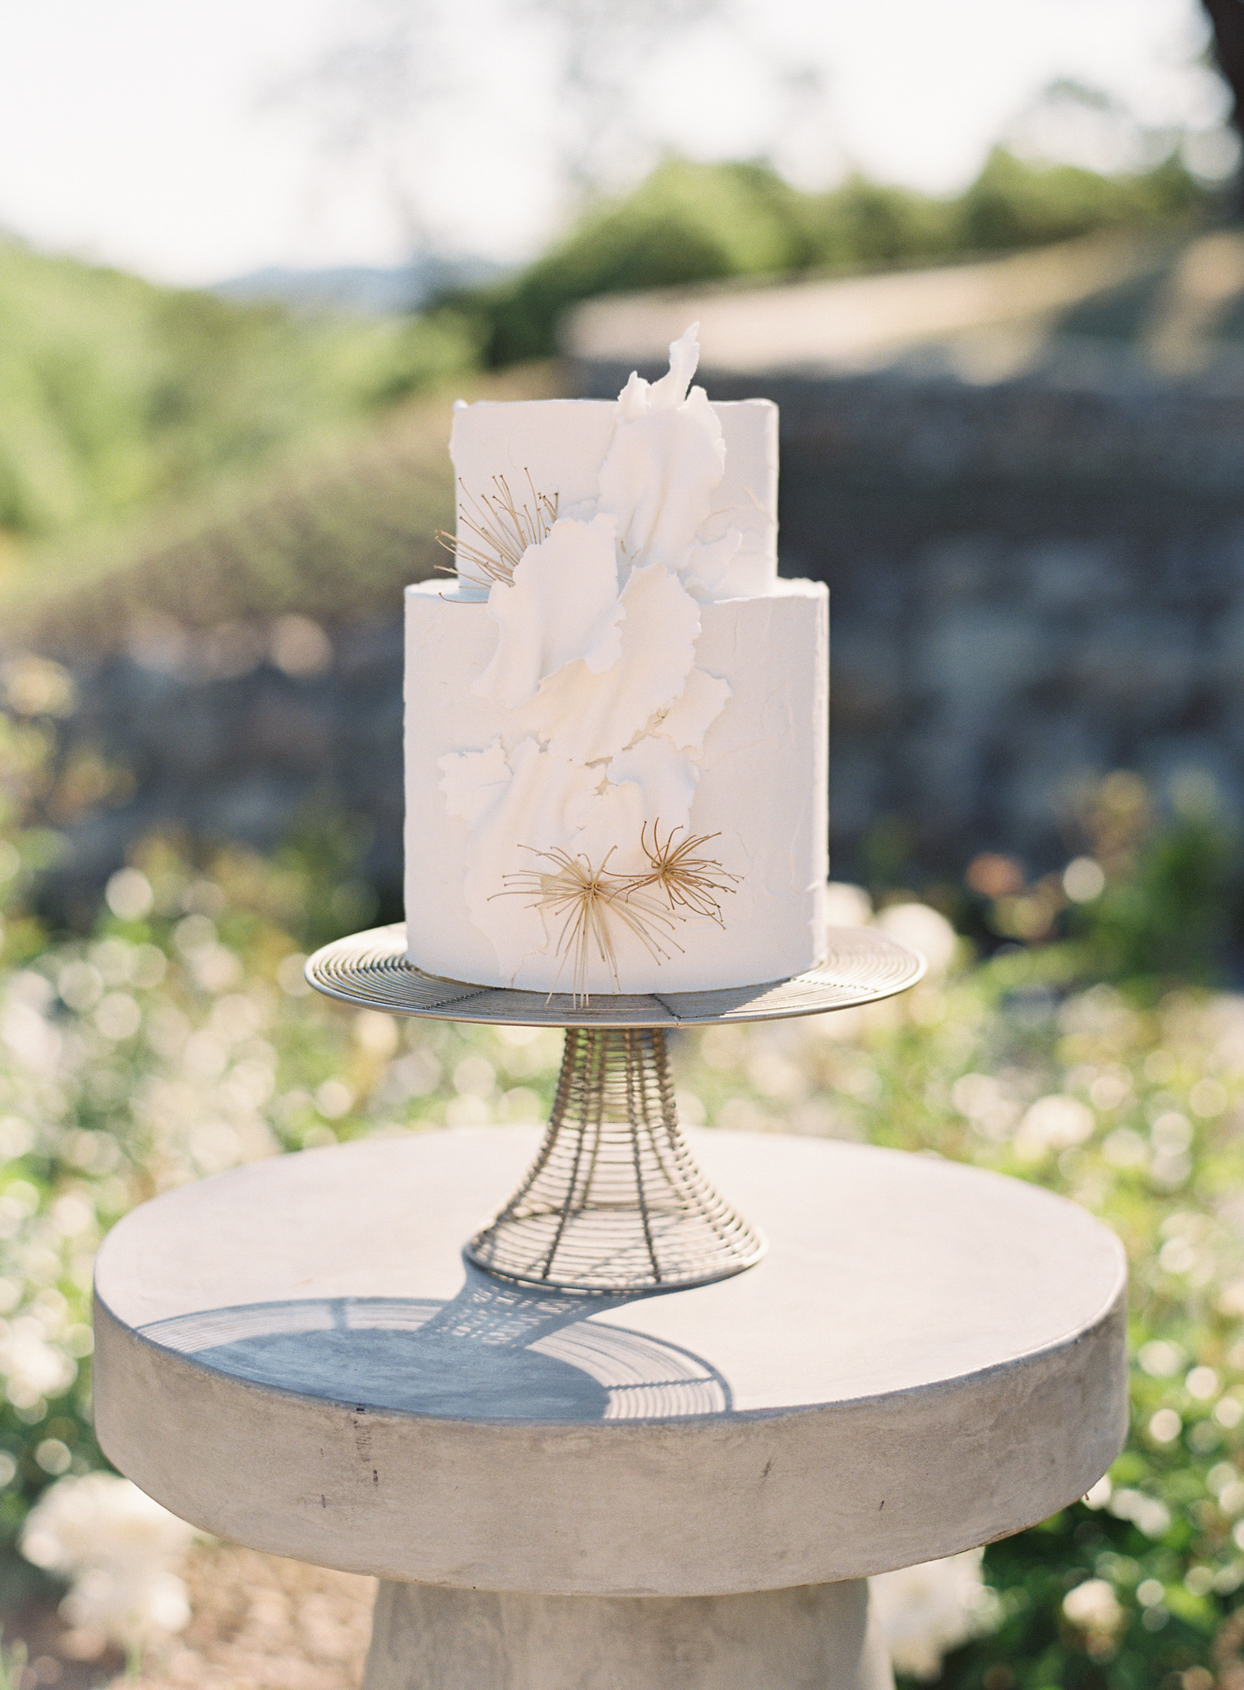 simple white two tear vow renewal cake on stone slab